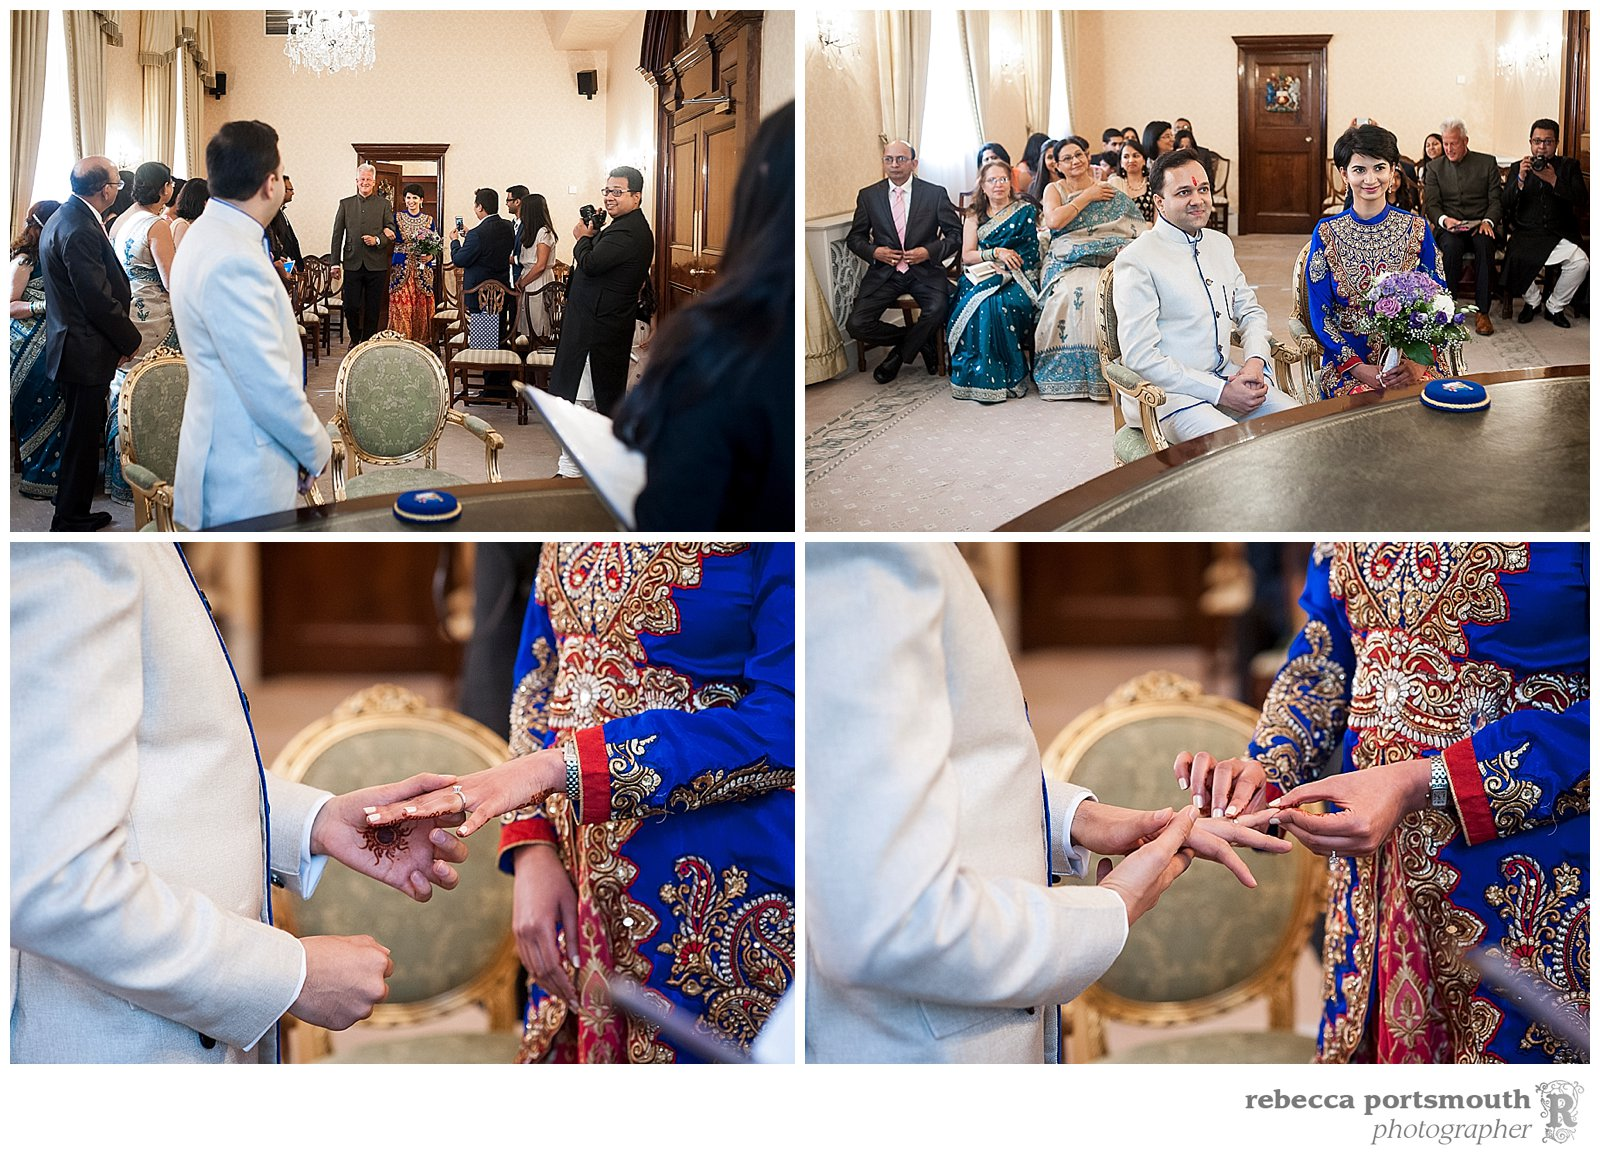 The Chelsea wedding photos of Pooja + Ankit at Chelsea Register Office's Brydon Room, including the bride and groom exchanging rings.